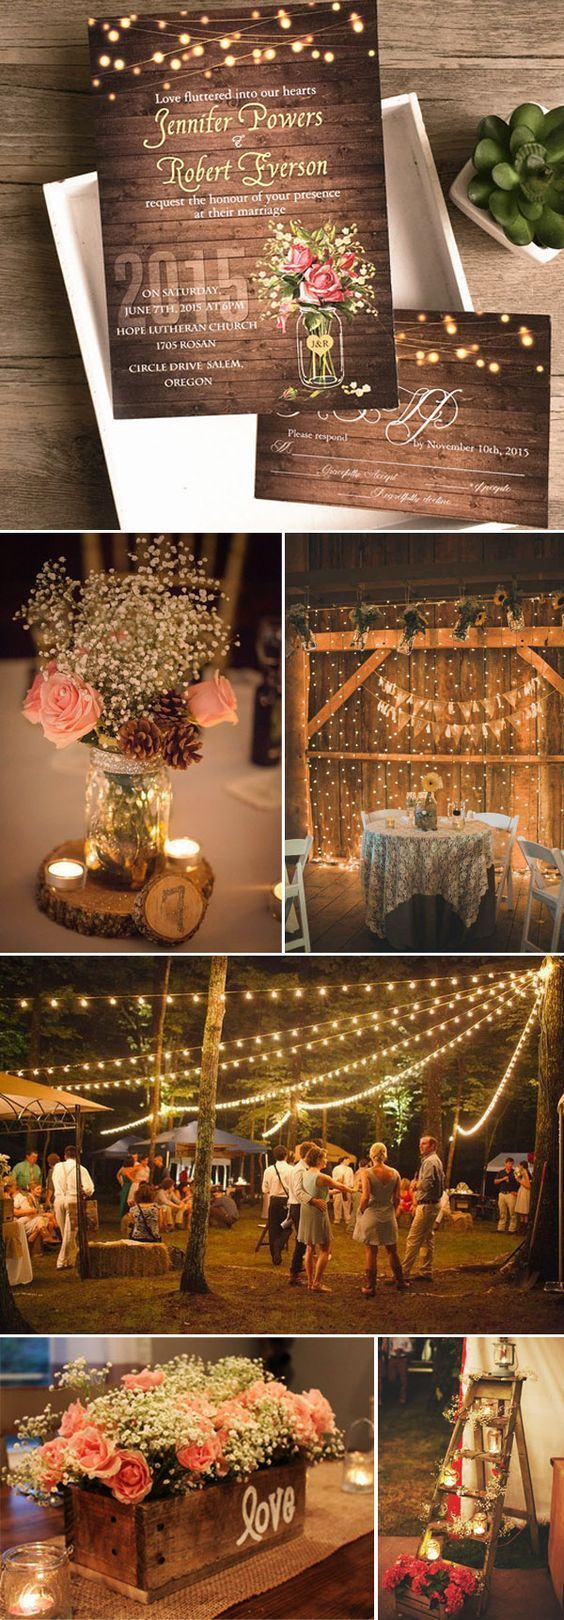 cool rustic wedding colors best photos - Orange Canopy Decorating